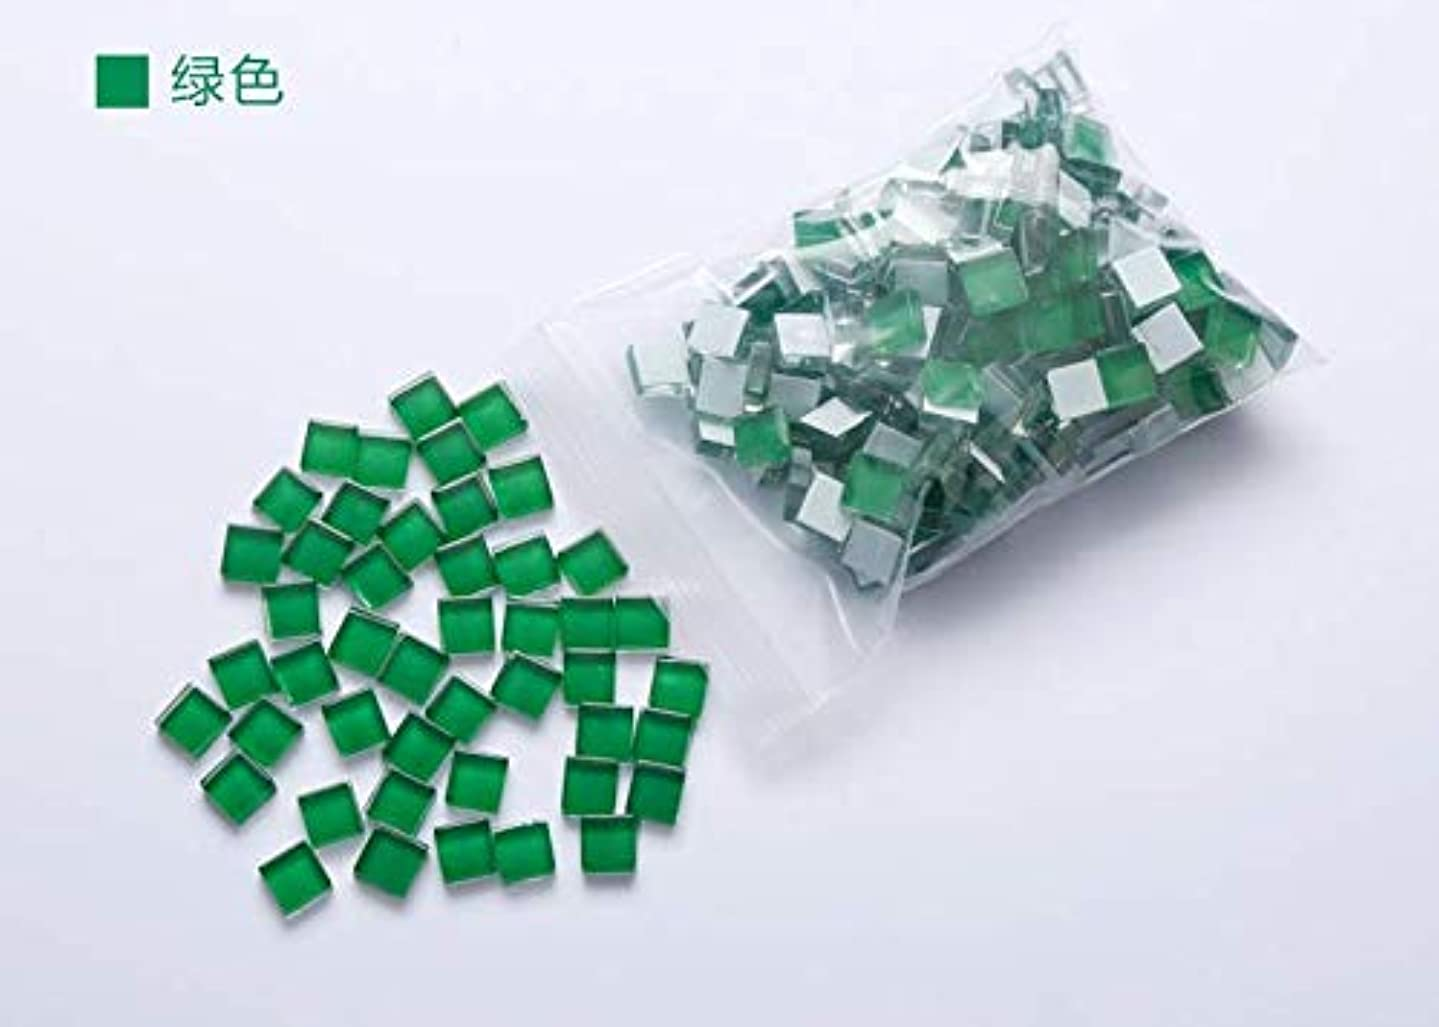 YEZZ Mosaic Supplies 200 Pieces/Square Shape 0.4x0.4 inch Transparent Stained Mosaic Glass Pieces for Home Decoration or DIY Crafts (Green)